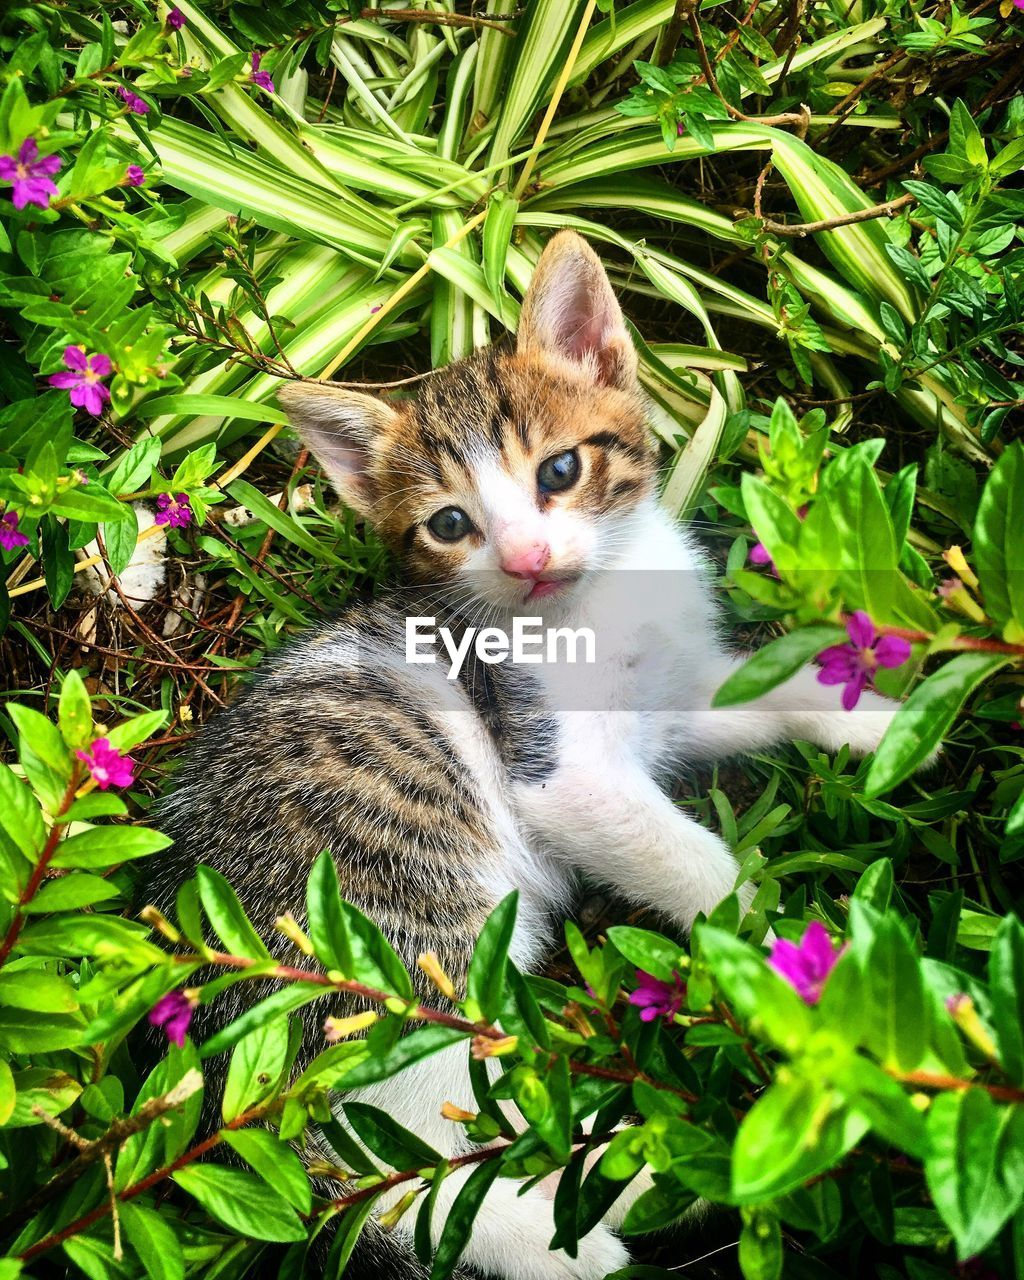 mammal, domestic, animal themes, animal, domestic cat, cat, pets, feline, domestic animals, plant, vertebrate, one animal, portrait, green color, no people, looking at camera, nature, flowering plant, flower, plant part, kitten, whisker